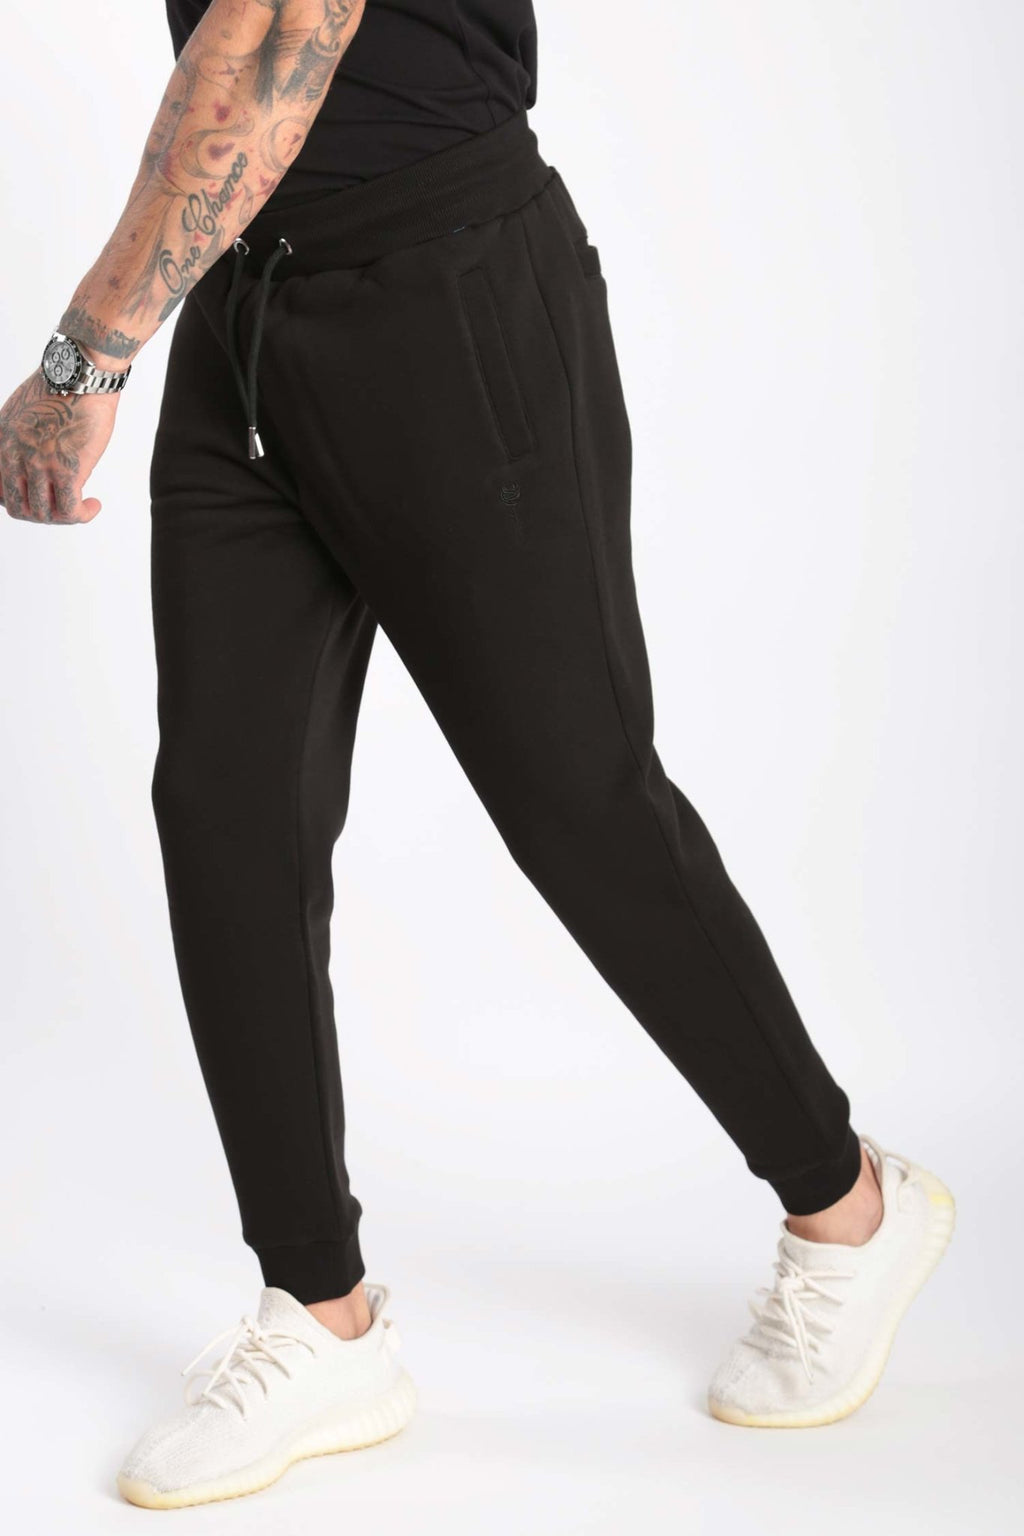 Rose London Core Cuffed Jogger Black - Rose London